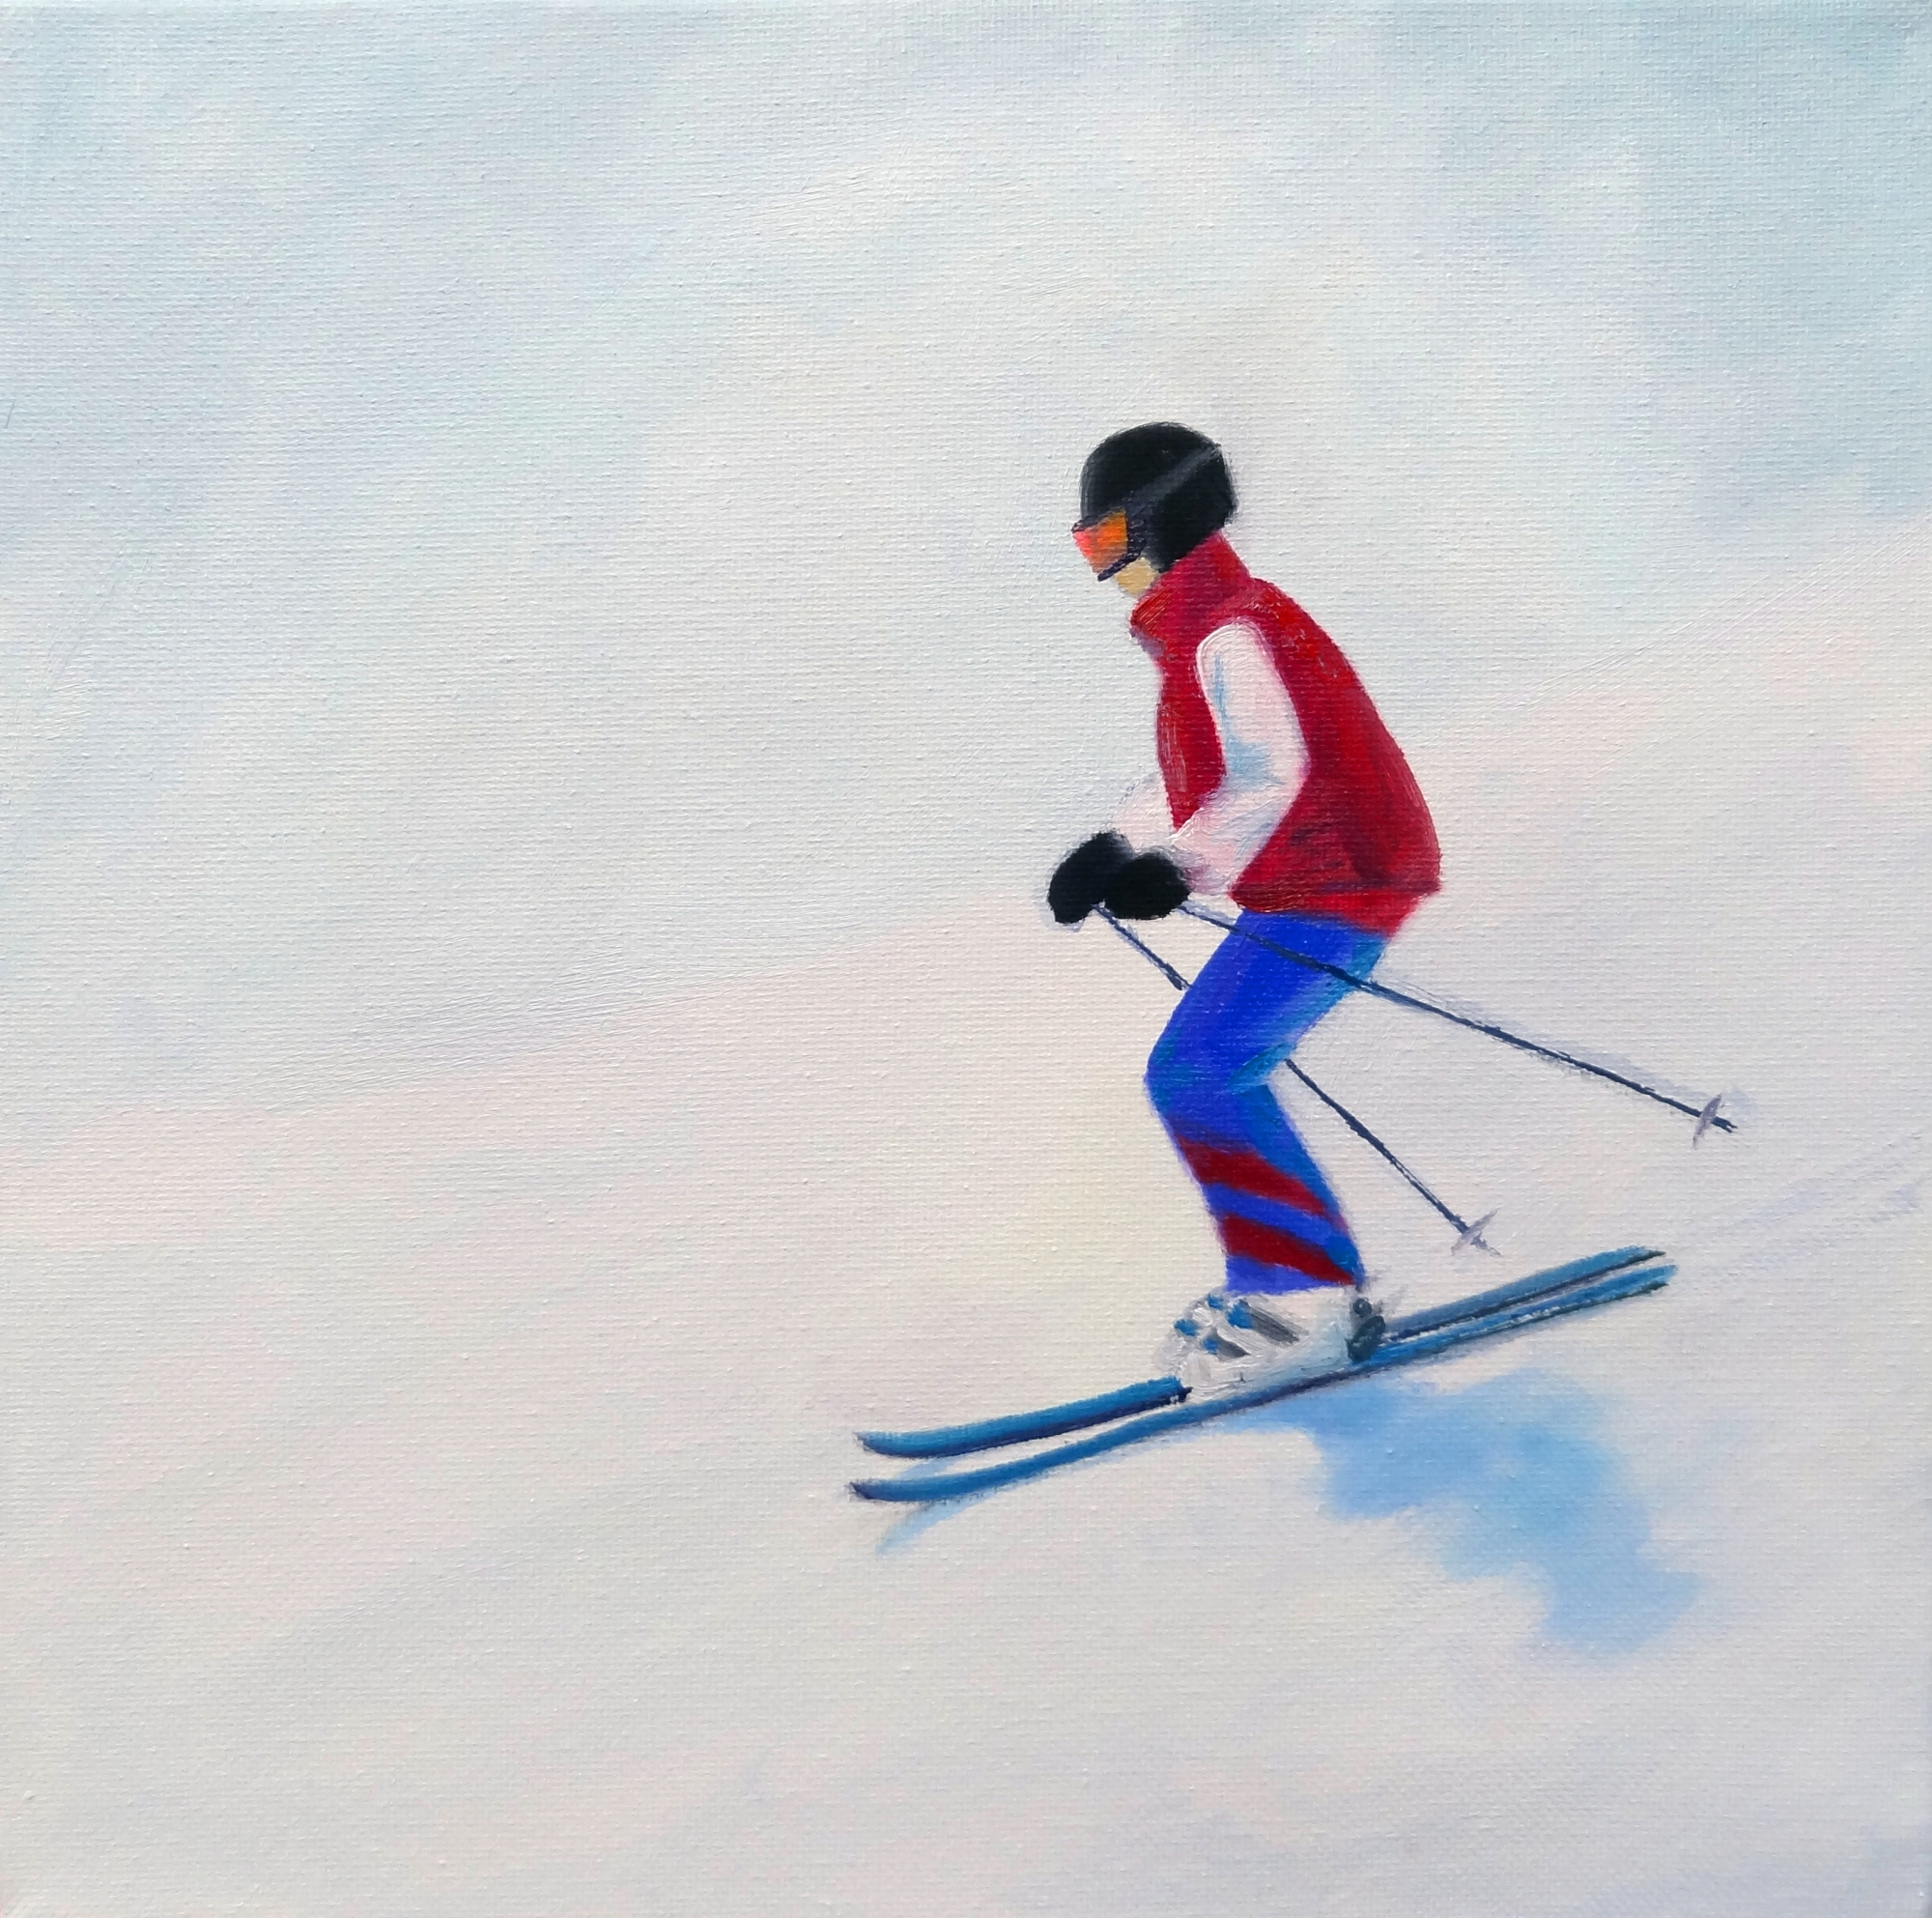 Bunny Slope by Emily Bickell